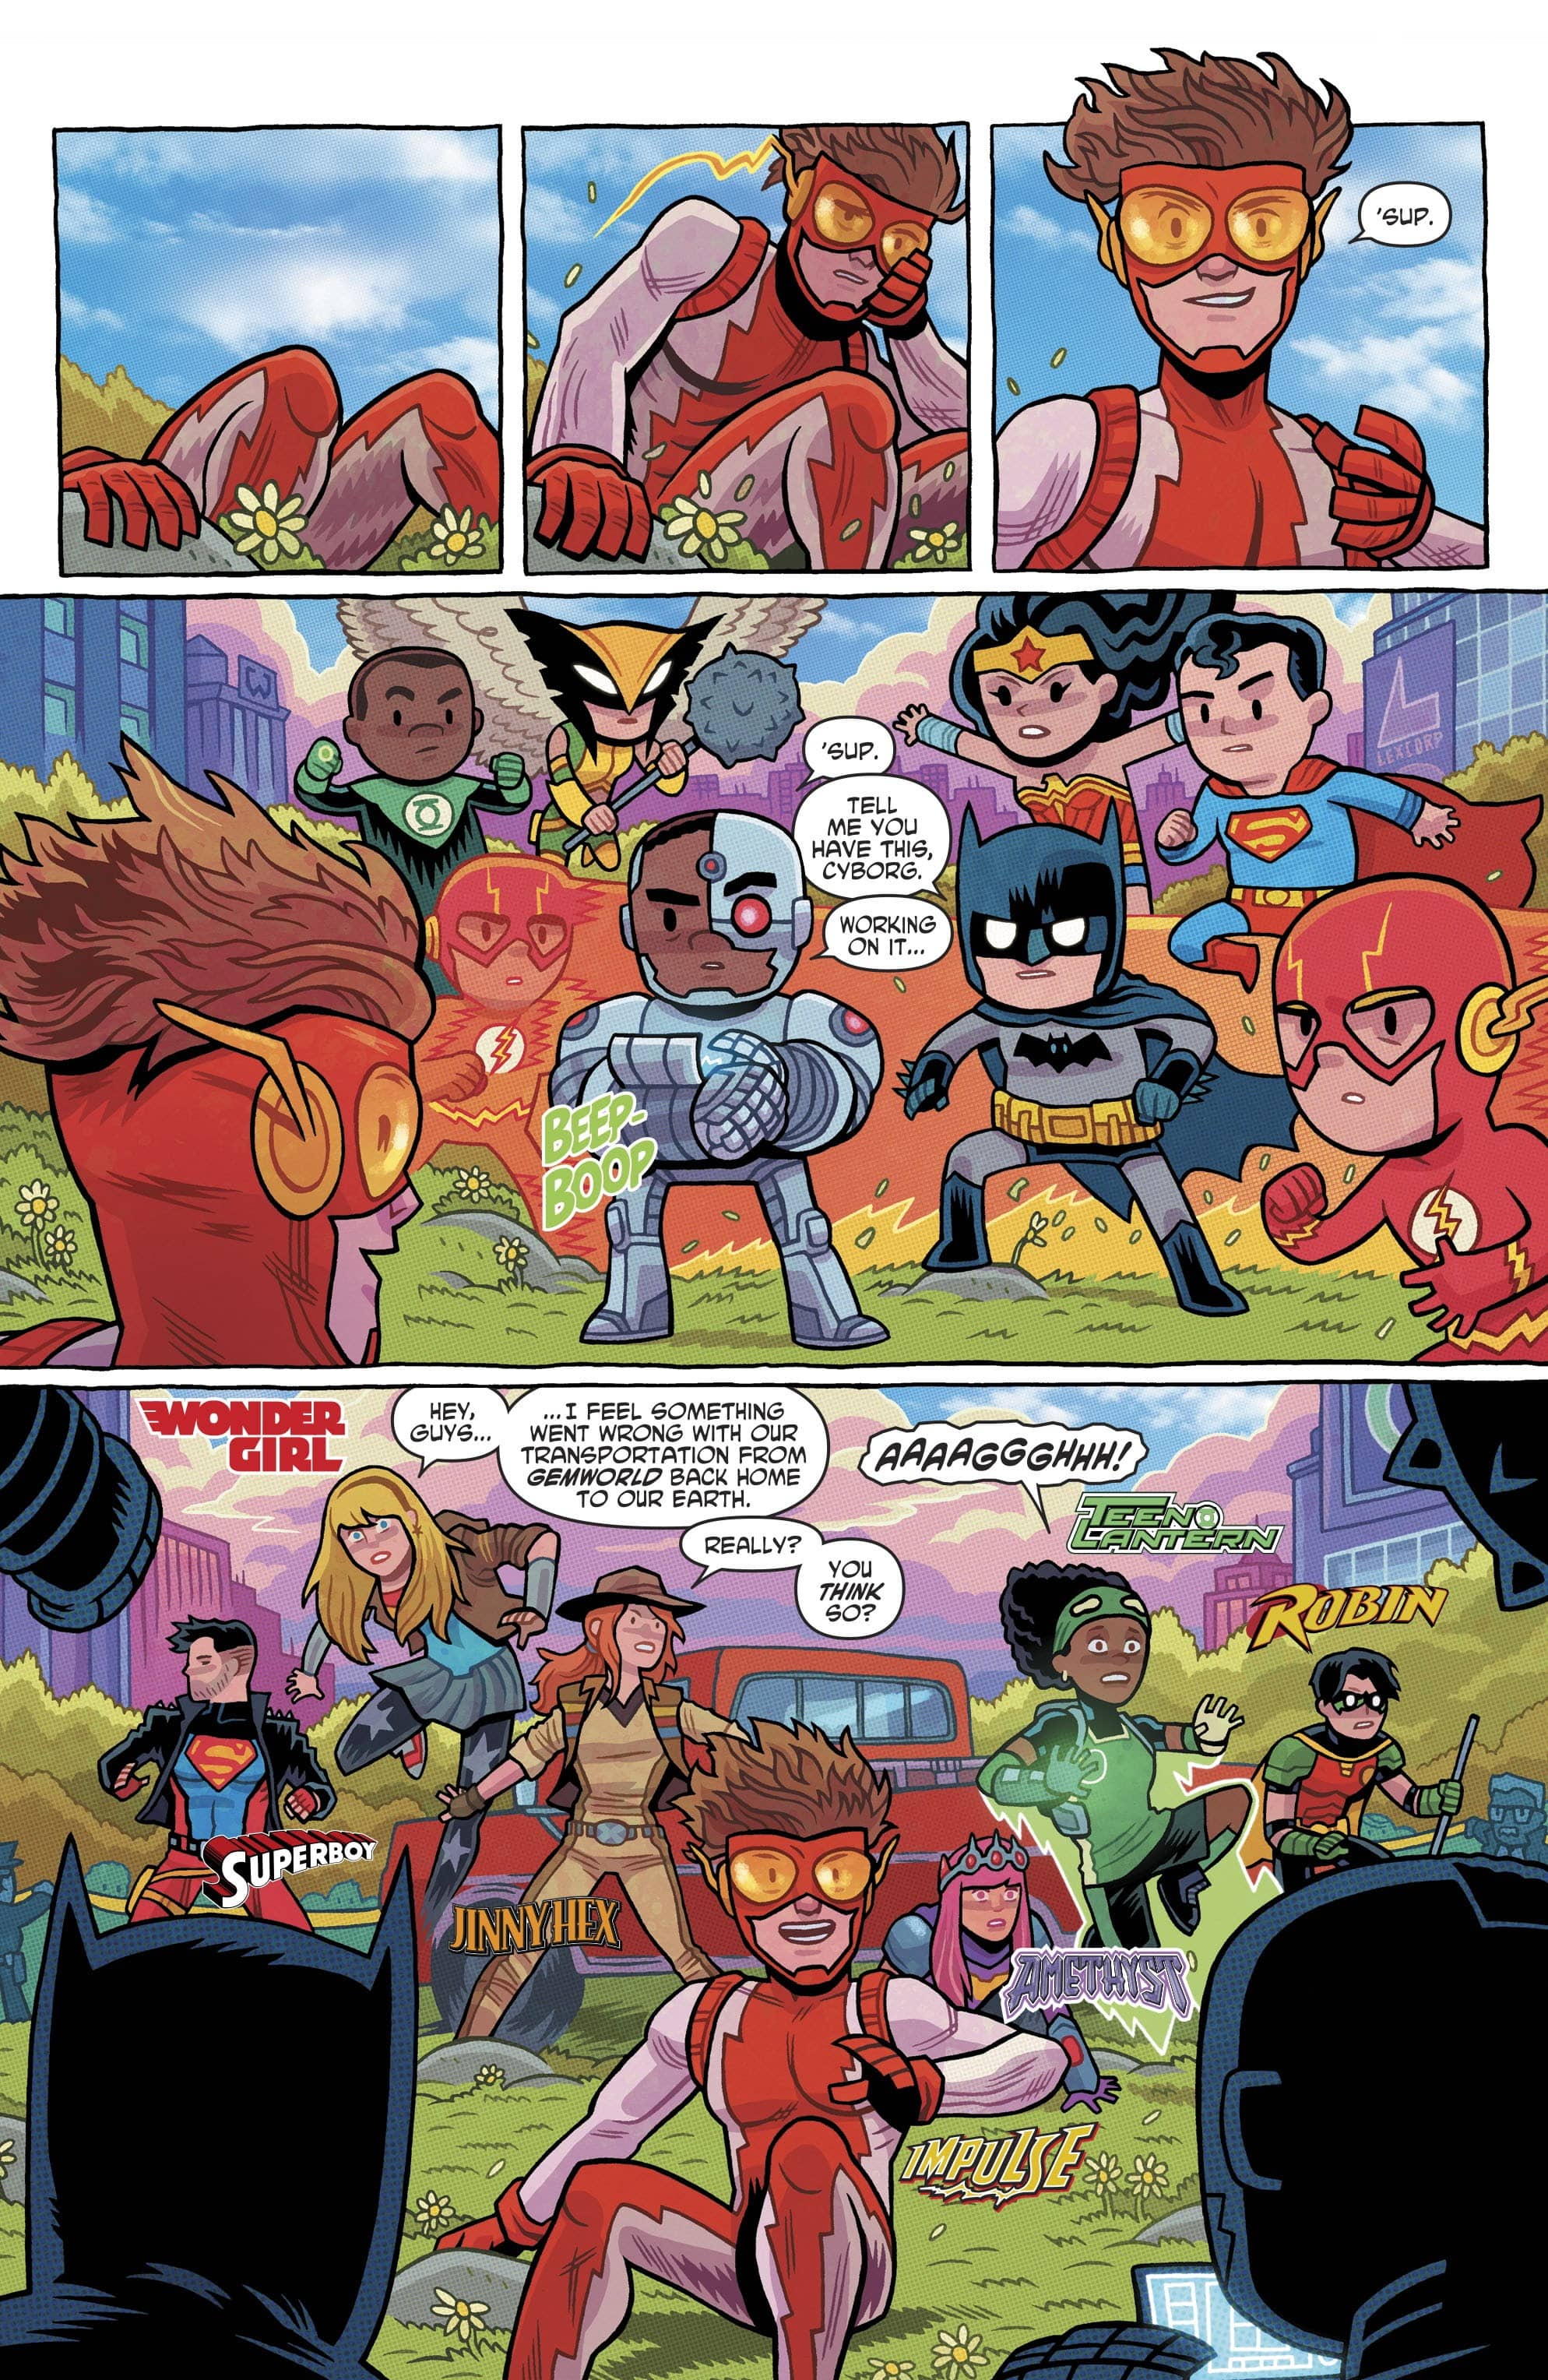 Young Justice #7: The Multiverse Map...I Had it Around Here ... on star wars rebels map, the simpsons map, steven universe map, amc walking dead map, true detective map, star trek map, revolution map, babylon 5 map, adventure time map, the walking dead map, prison break map, regular show map, sons of anarchy map, spongebob squarepants map, breaking bad map, american horror story map, bleach map, pokémon map, gravity falls map, house map,